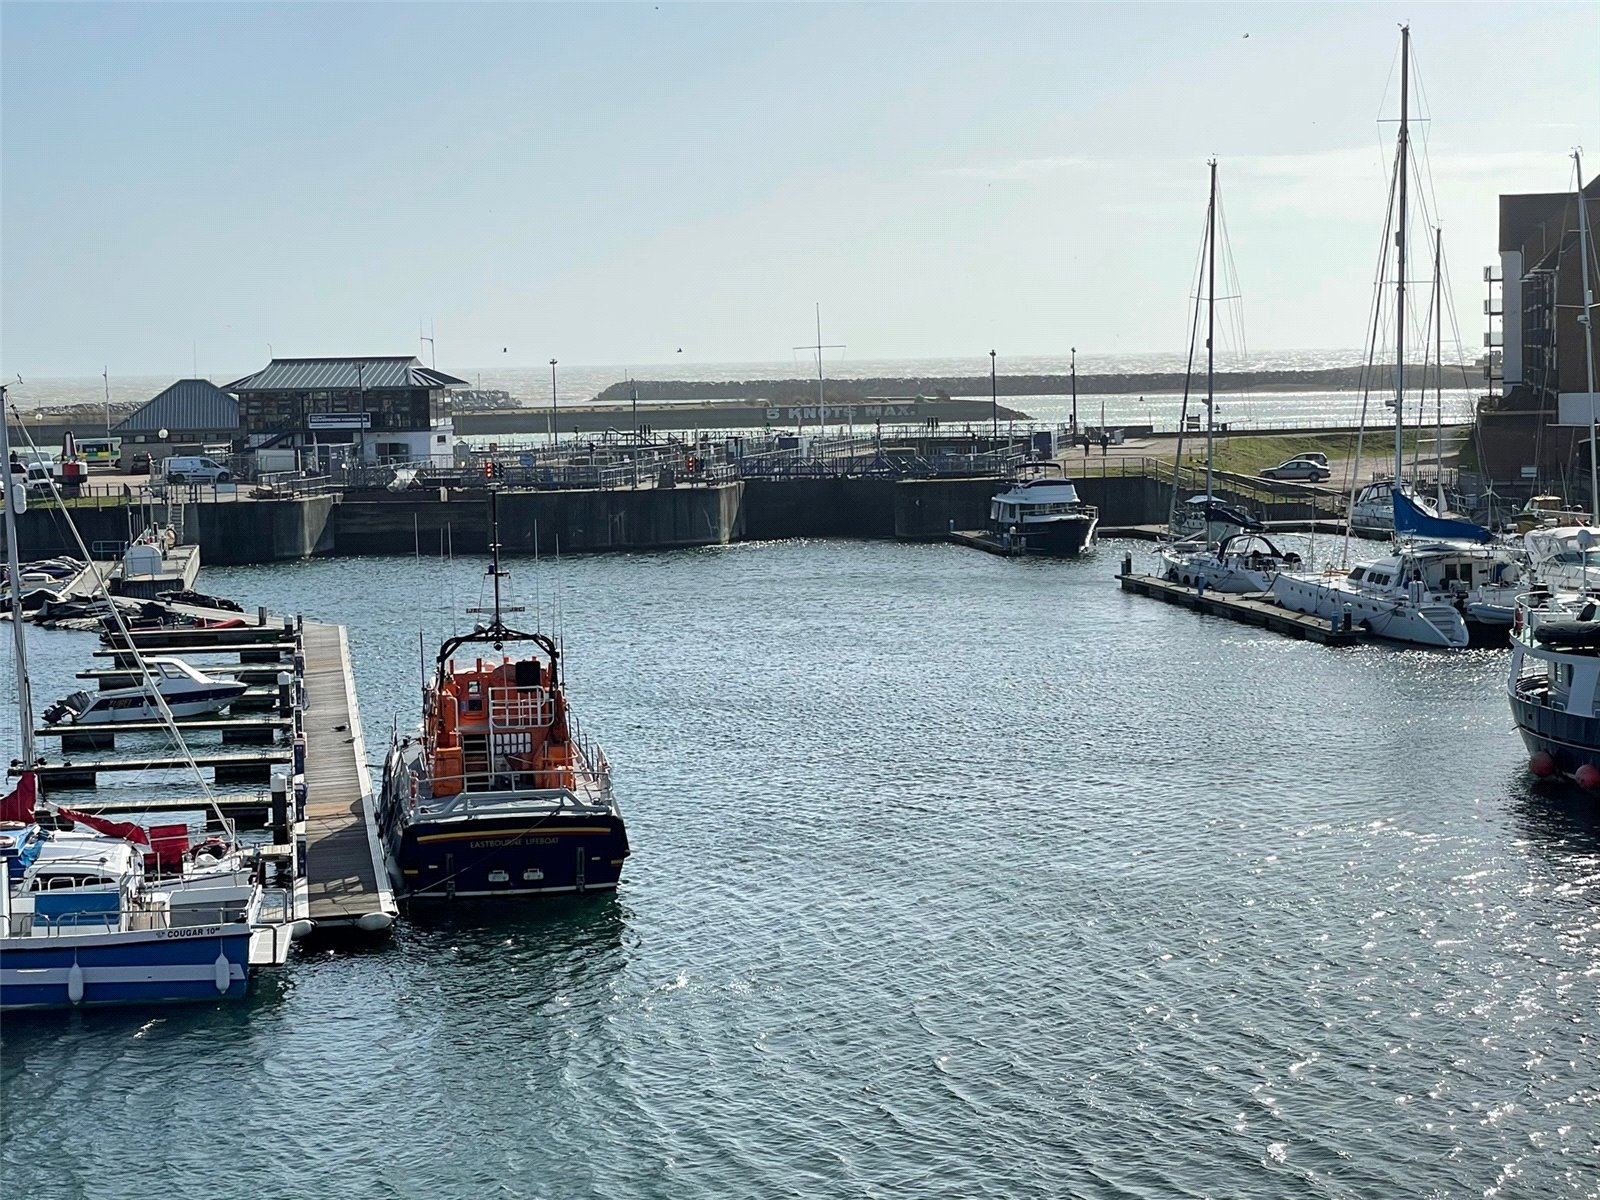 Madeira Way, Sovereign Harbour South